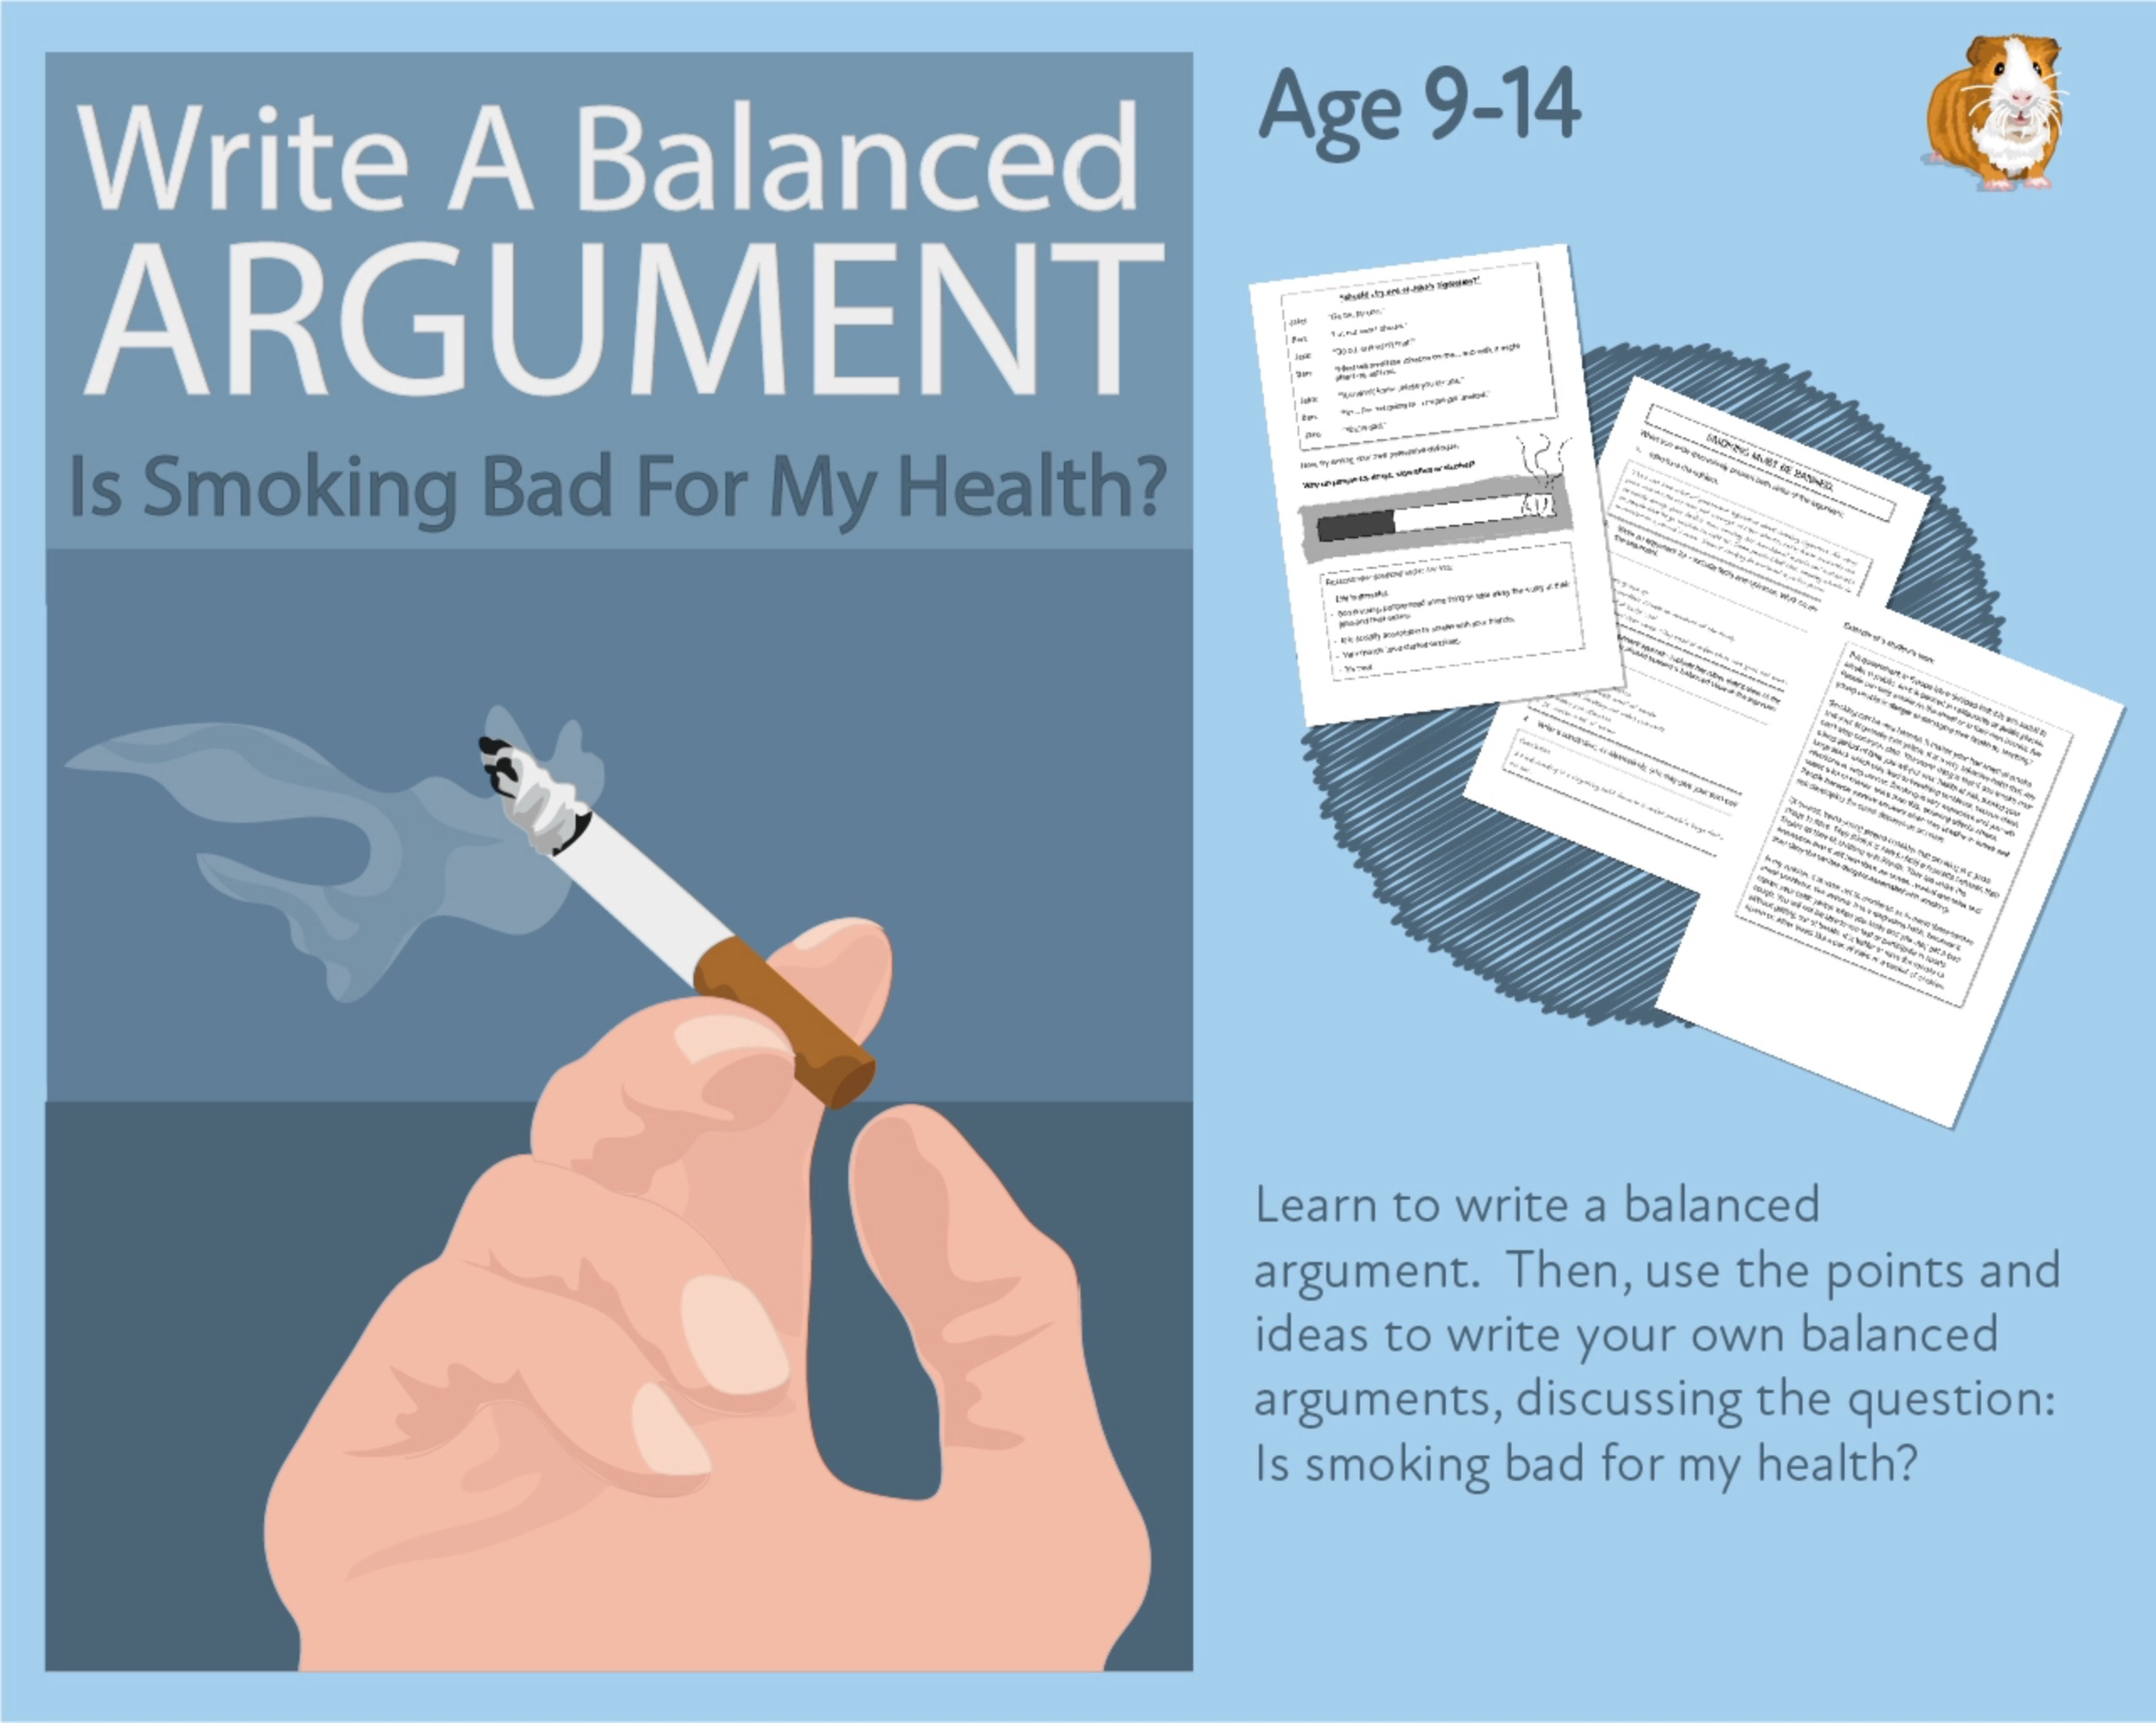 Practise Writing A Balanced Argument: Is Smoking Bad For My Health? (9-14 years)